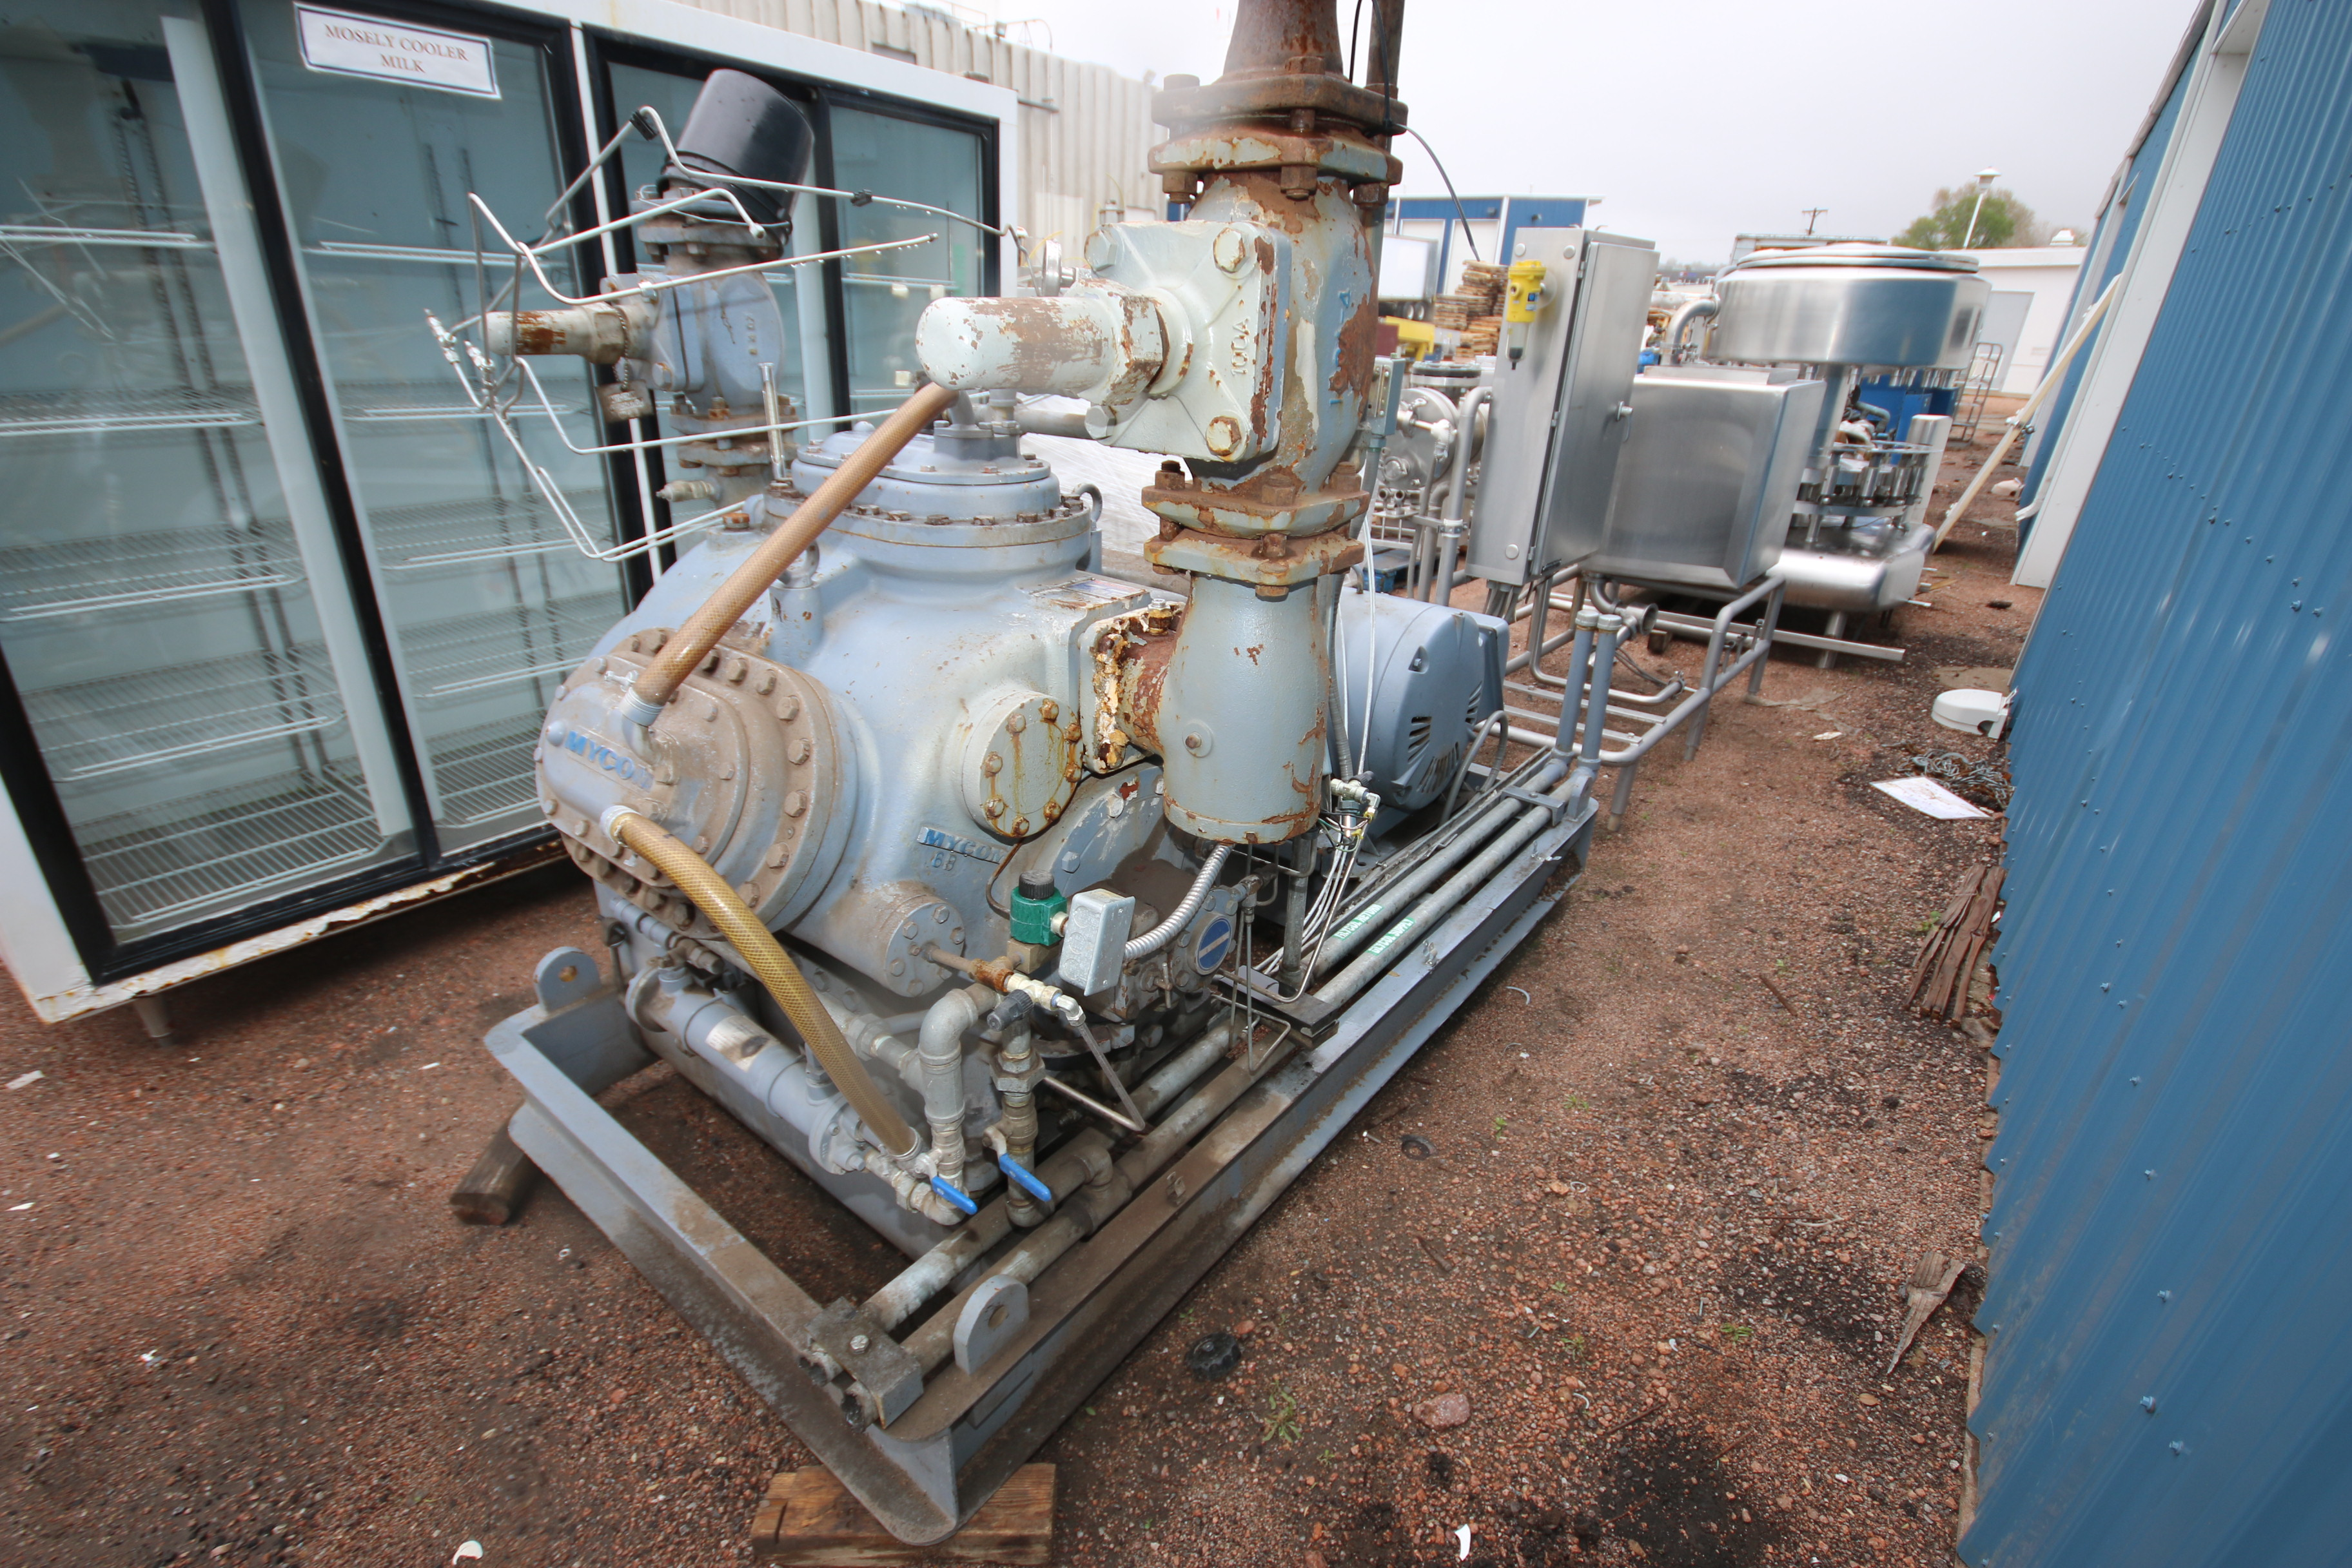 Mycom 6-Cylinder 100 hp Reciprocating Ammonia Compressor, Model N6WB